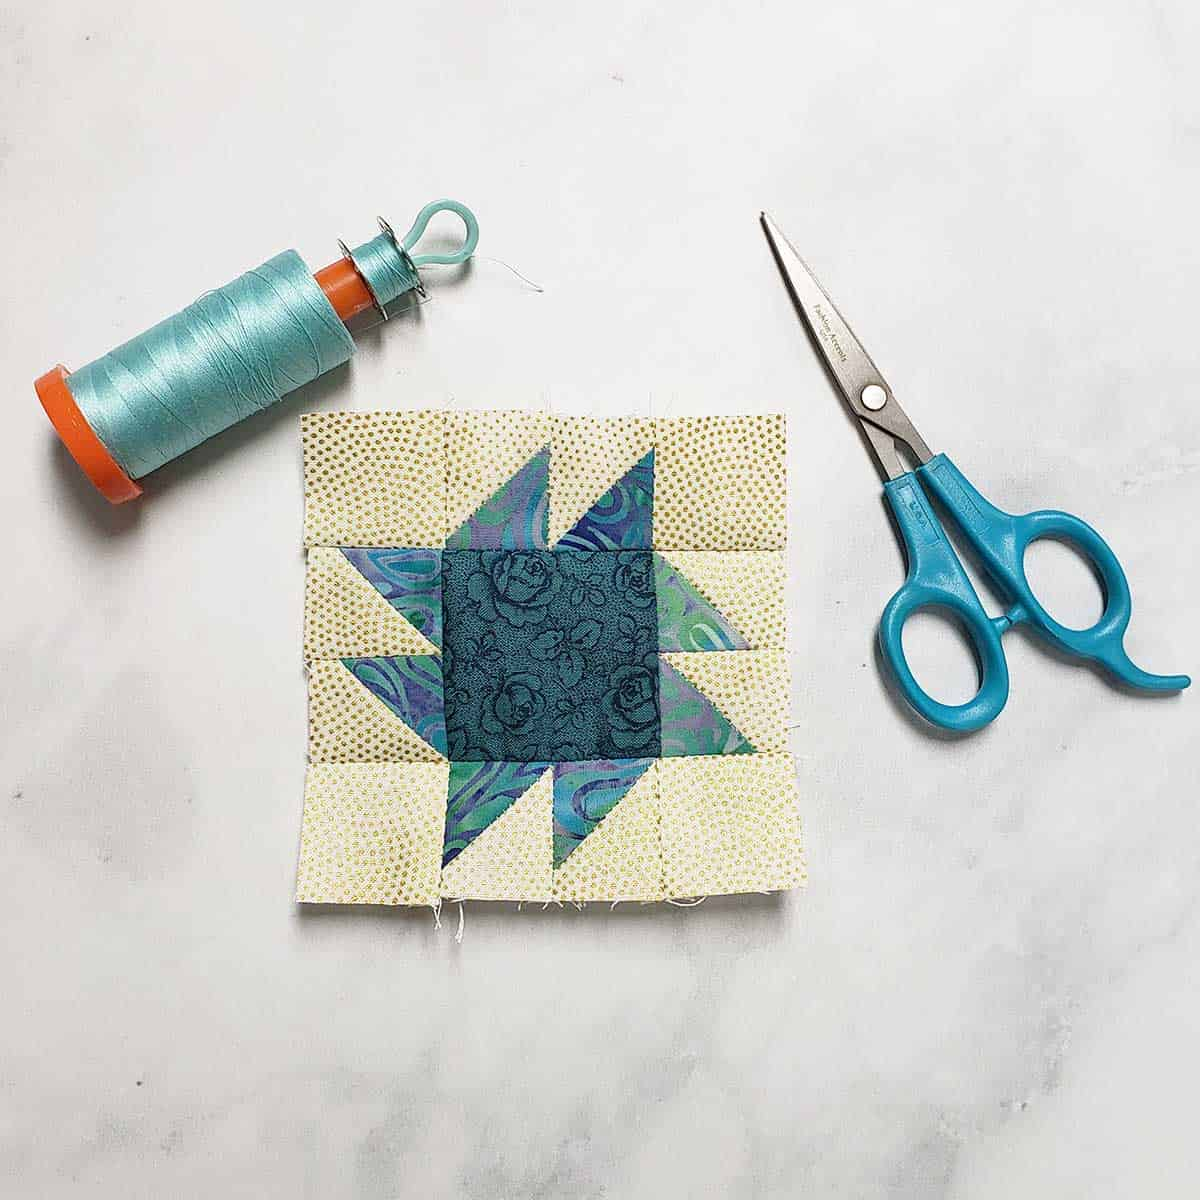 Square and Points quilt block with scissors